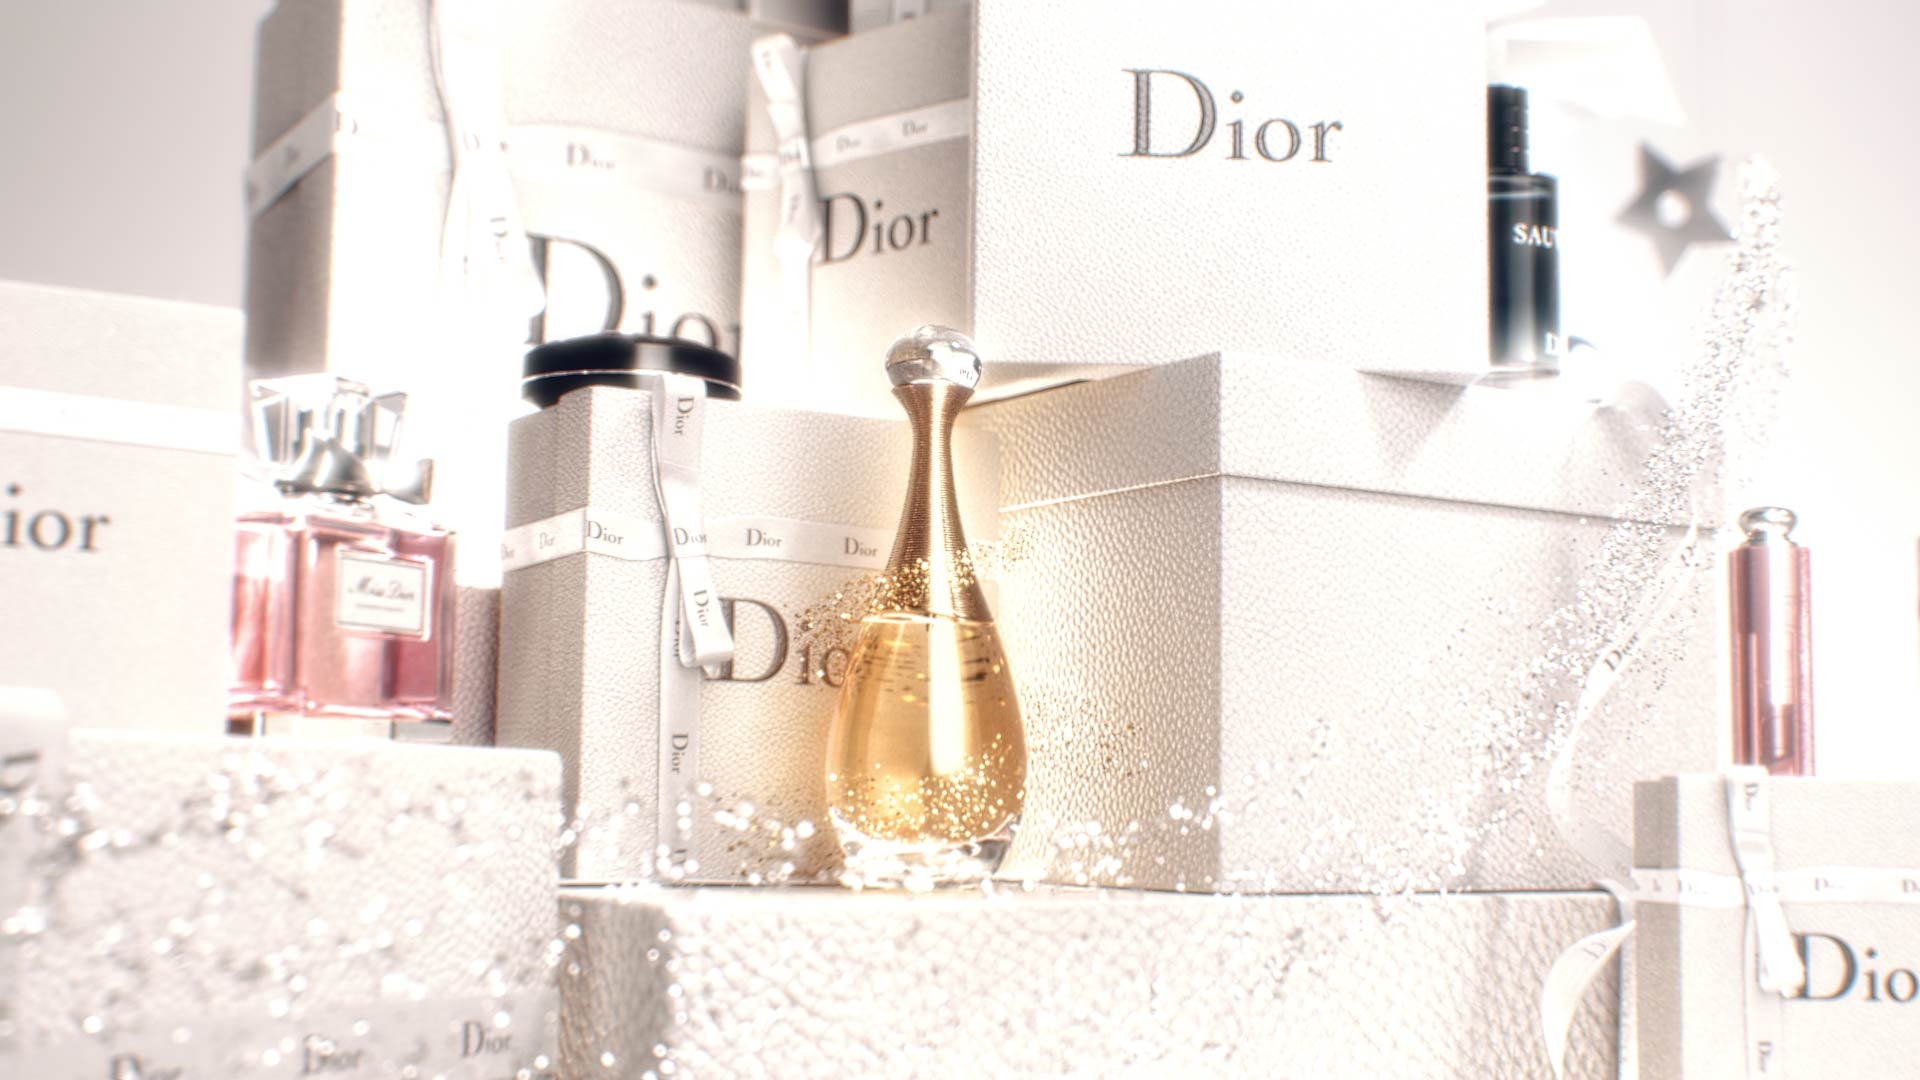 3D Motion Design with Dior products on top of gift boxes with magical particles